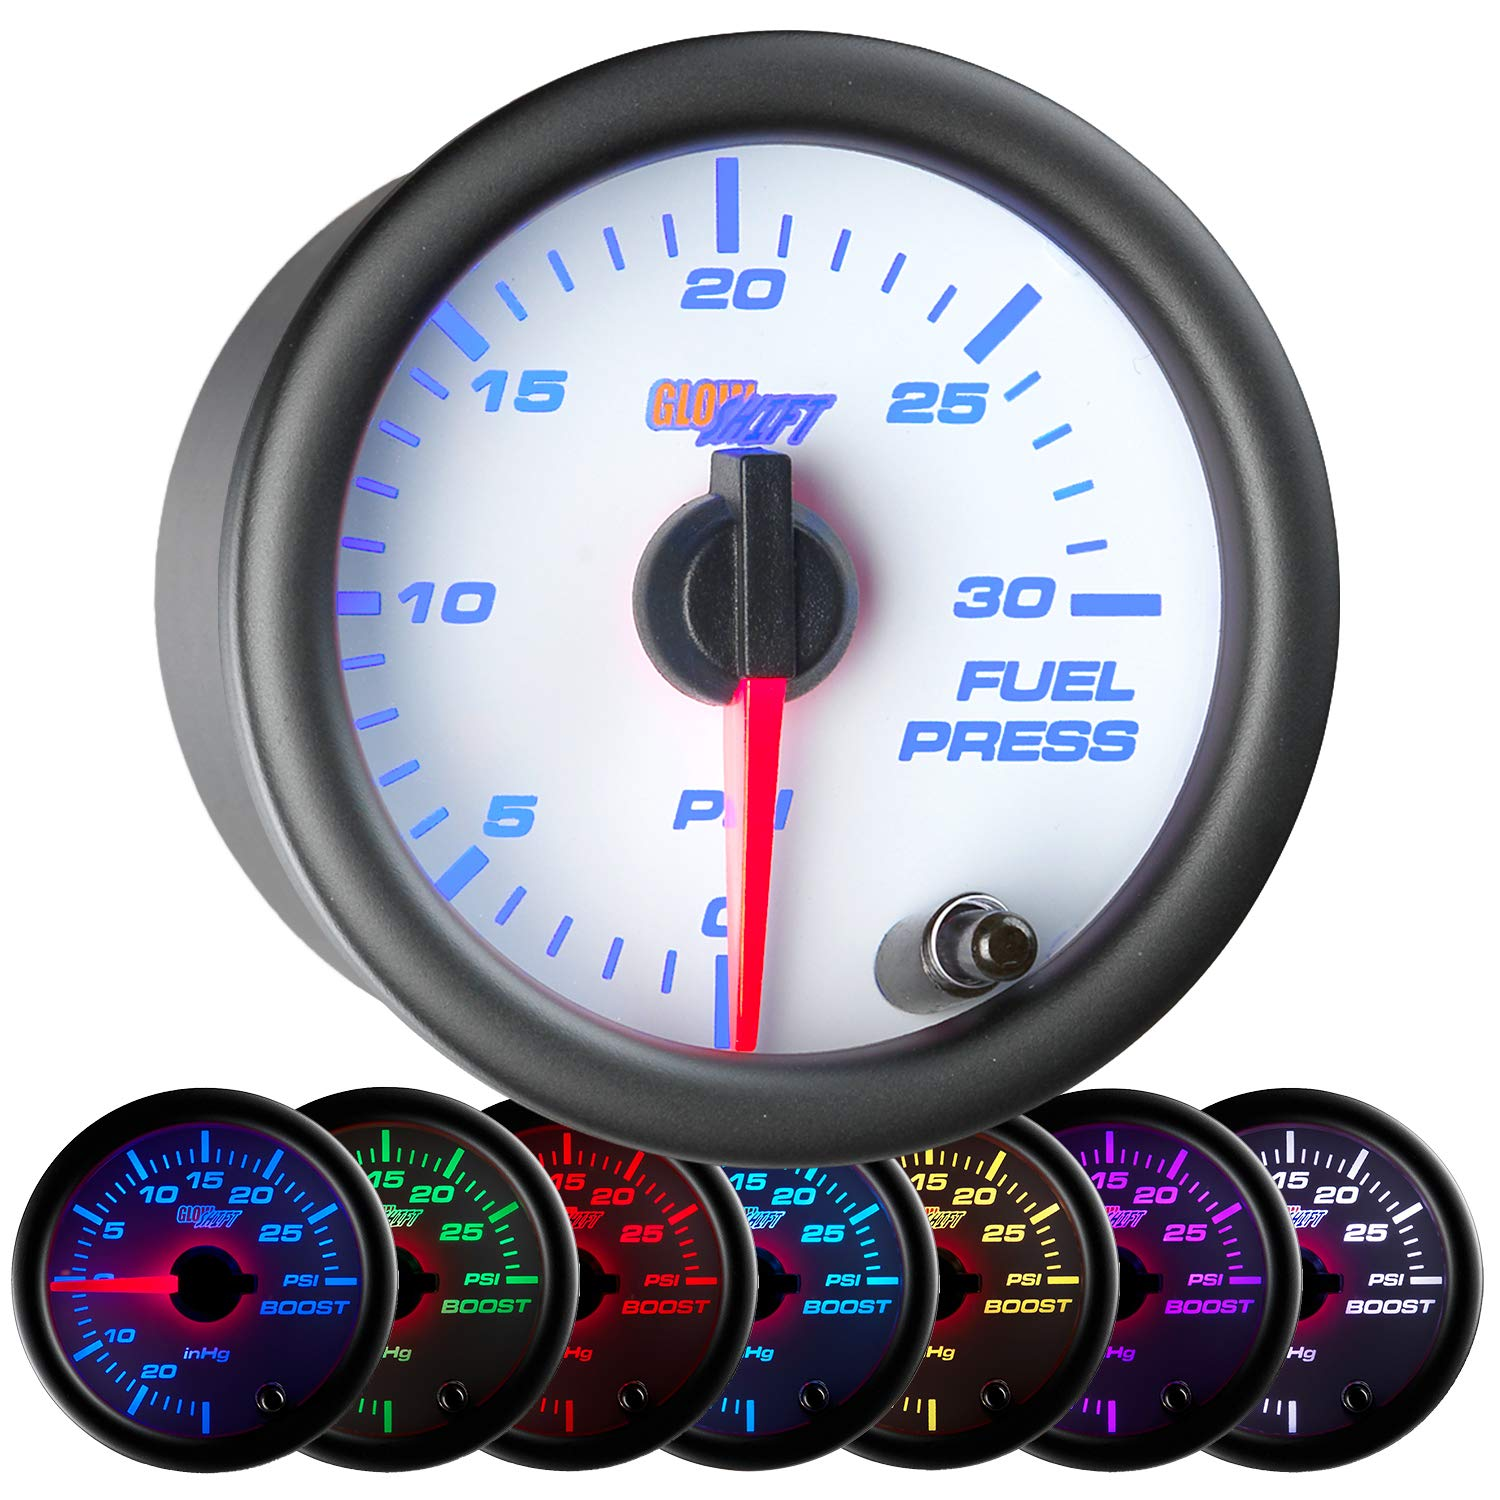 Sales for sale GlowShift White 7 Color 30 PSI Fuel Gauge Pressure - Include Kit Outlet SALE